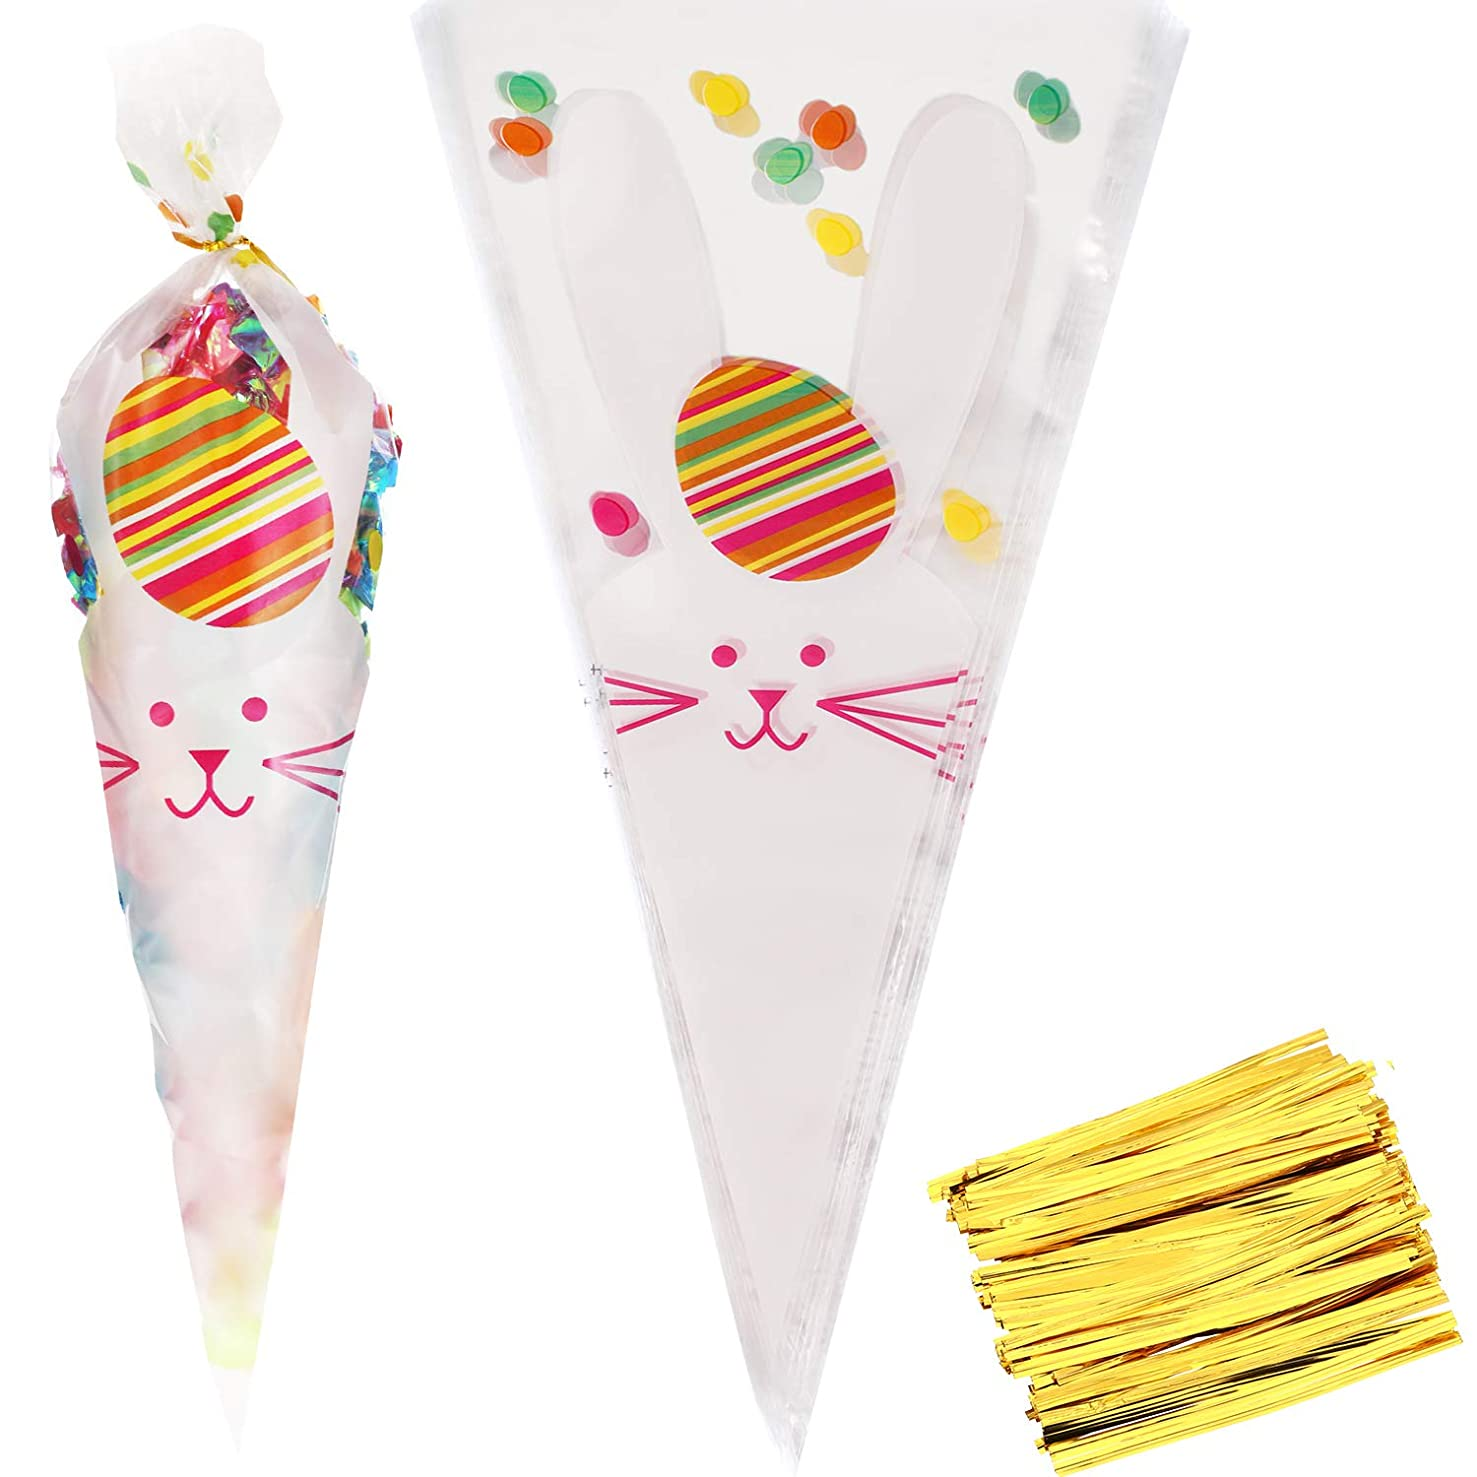 Yaomiao 100 Pieces Easter Cellophane Bags Bunny Pattern Plastic Treat Bags Carrot Goody Bags with Gold Twist Ties for Easter Party Supplies (Style 1)